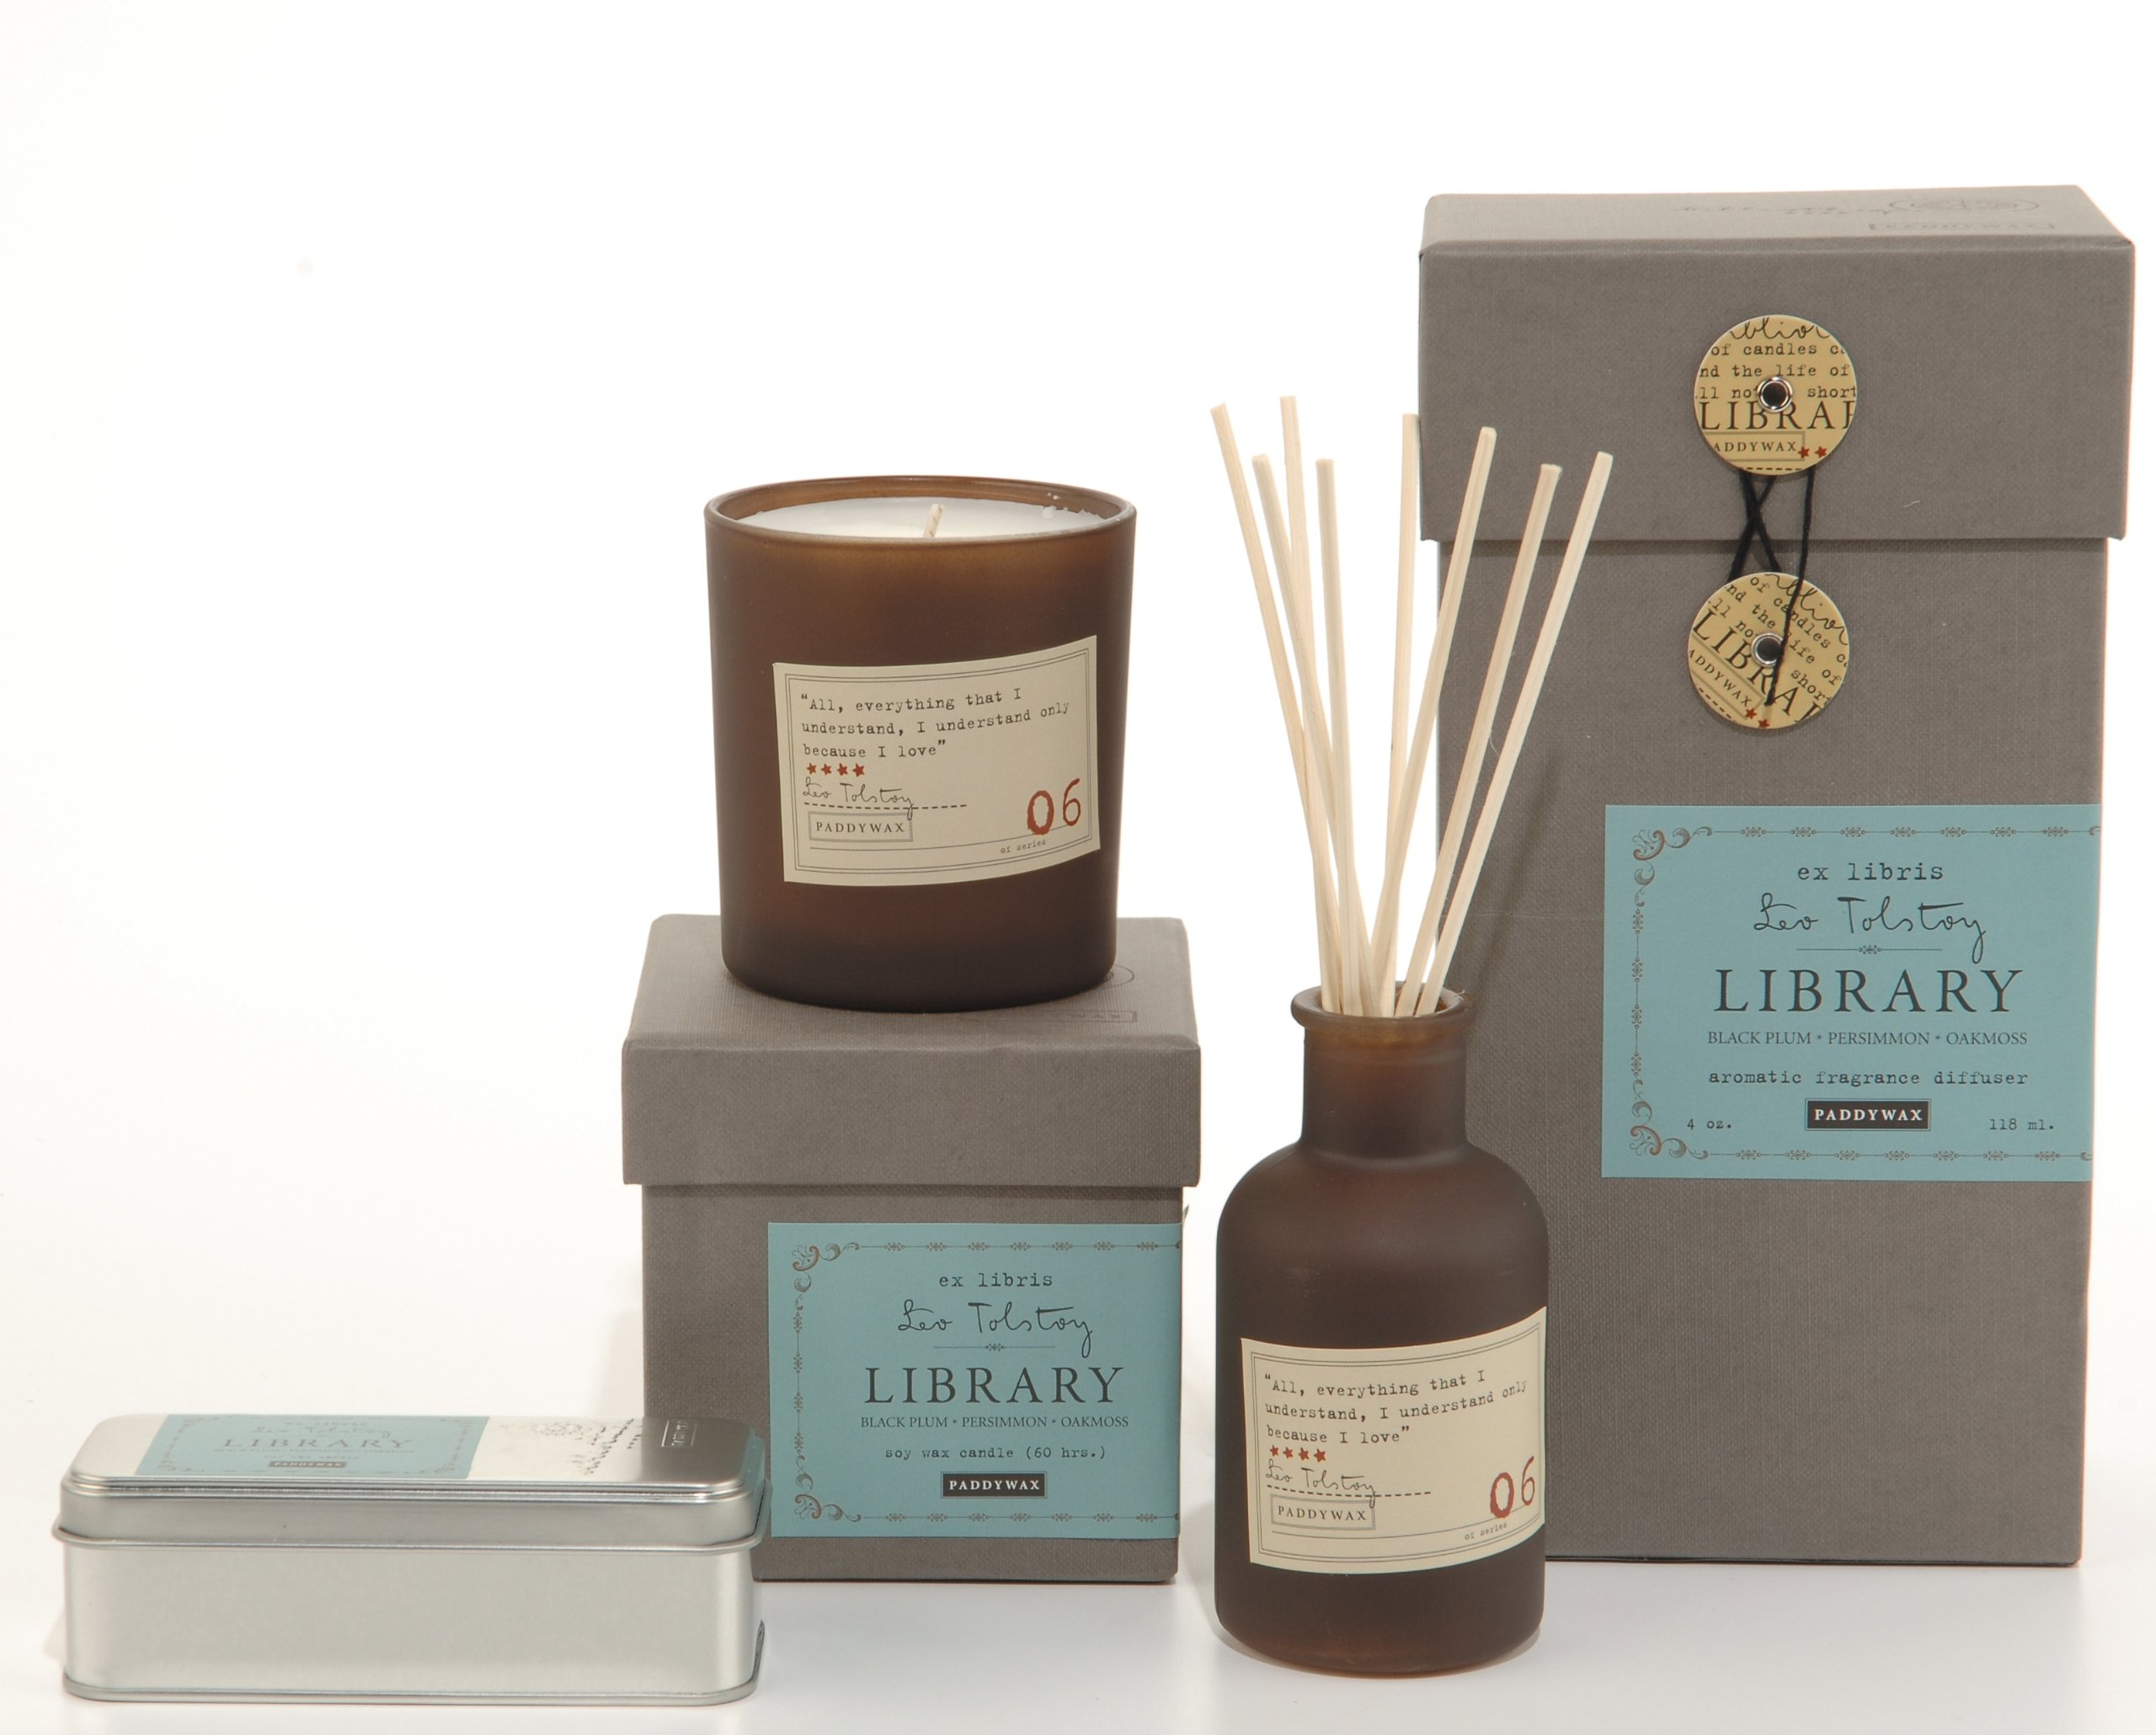 Paddywax Library Collection Leo Tolstoy Scented Soy Wax Candle, 6.5-Ounce, Black Plum, Persimmon & Oakmoss